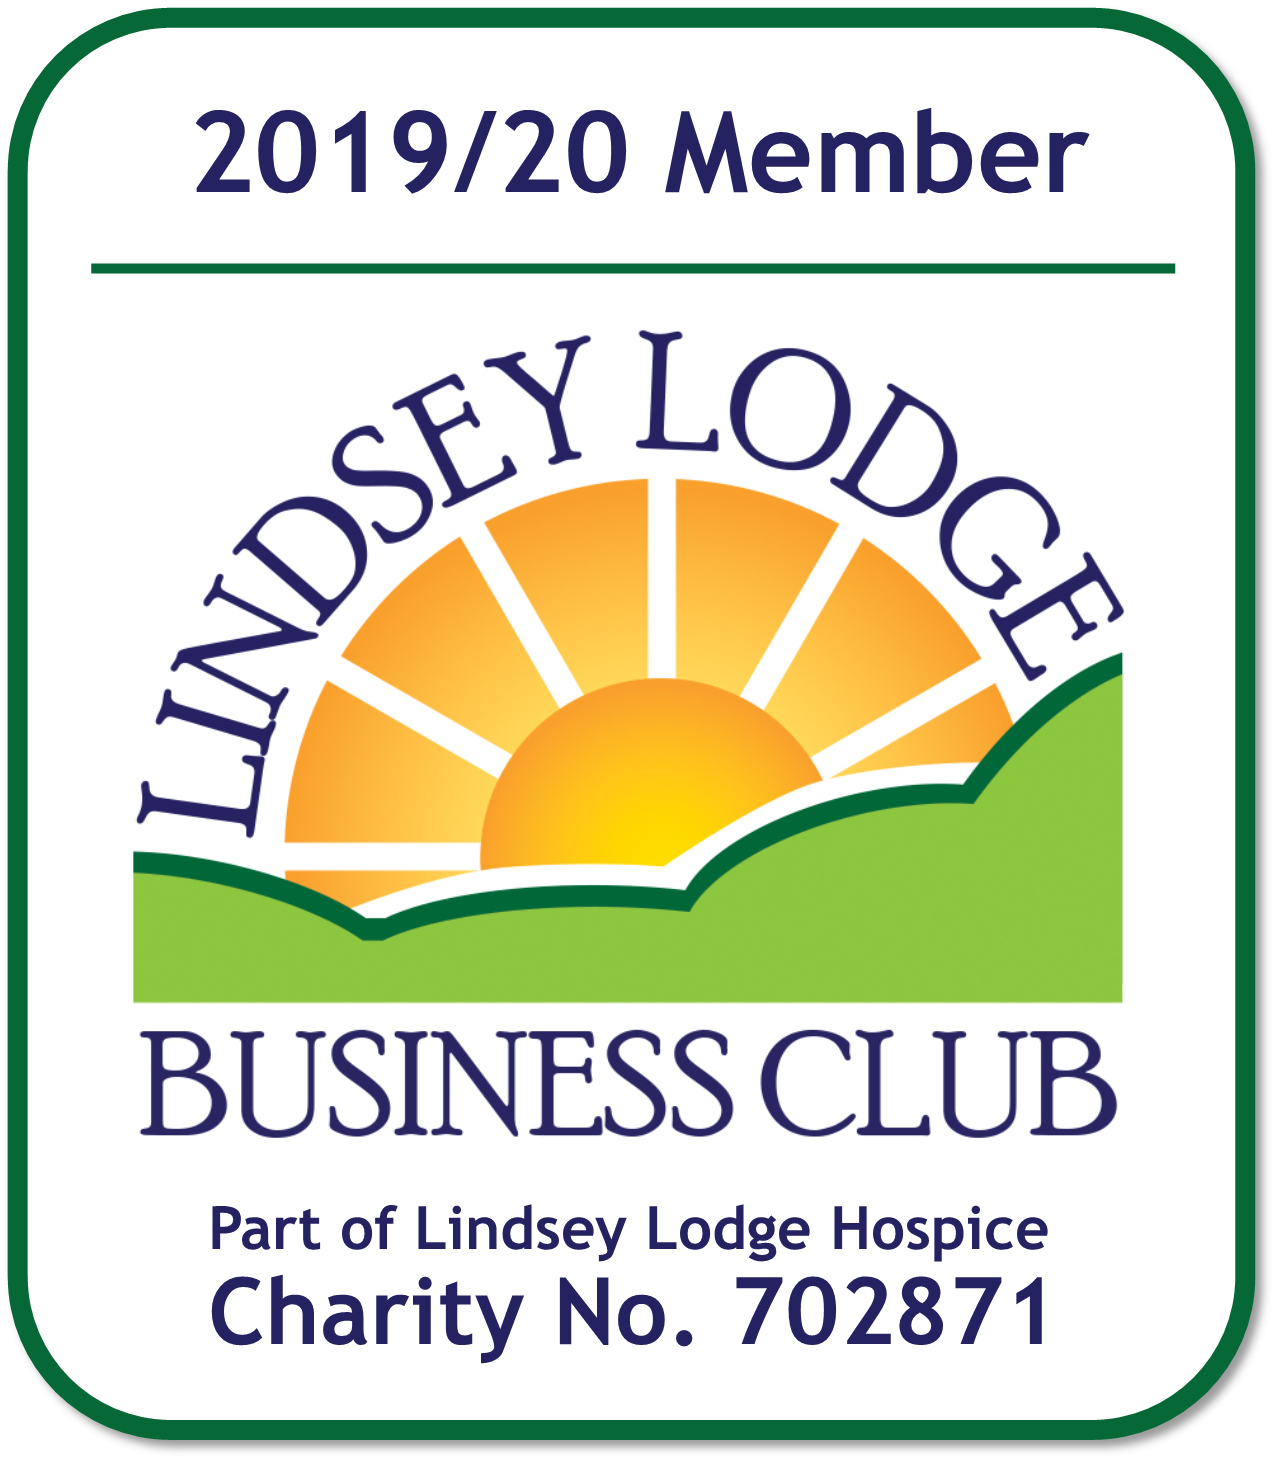 Business Club member logo